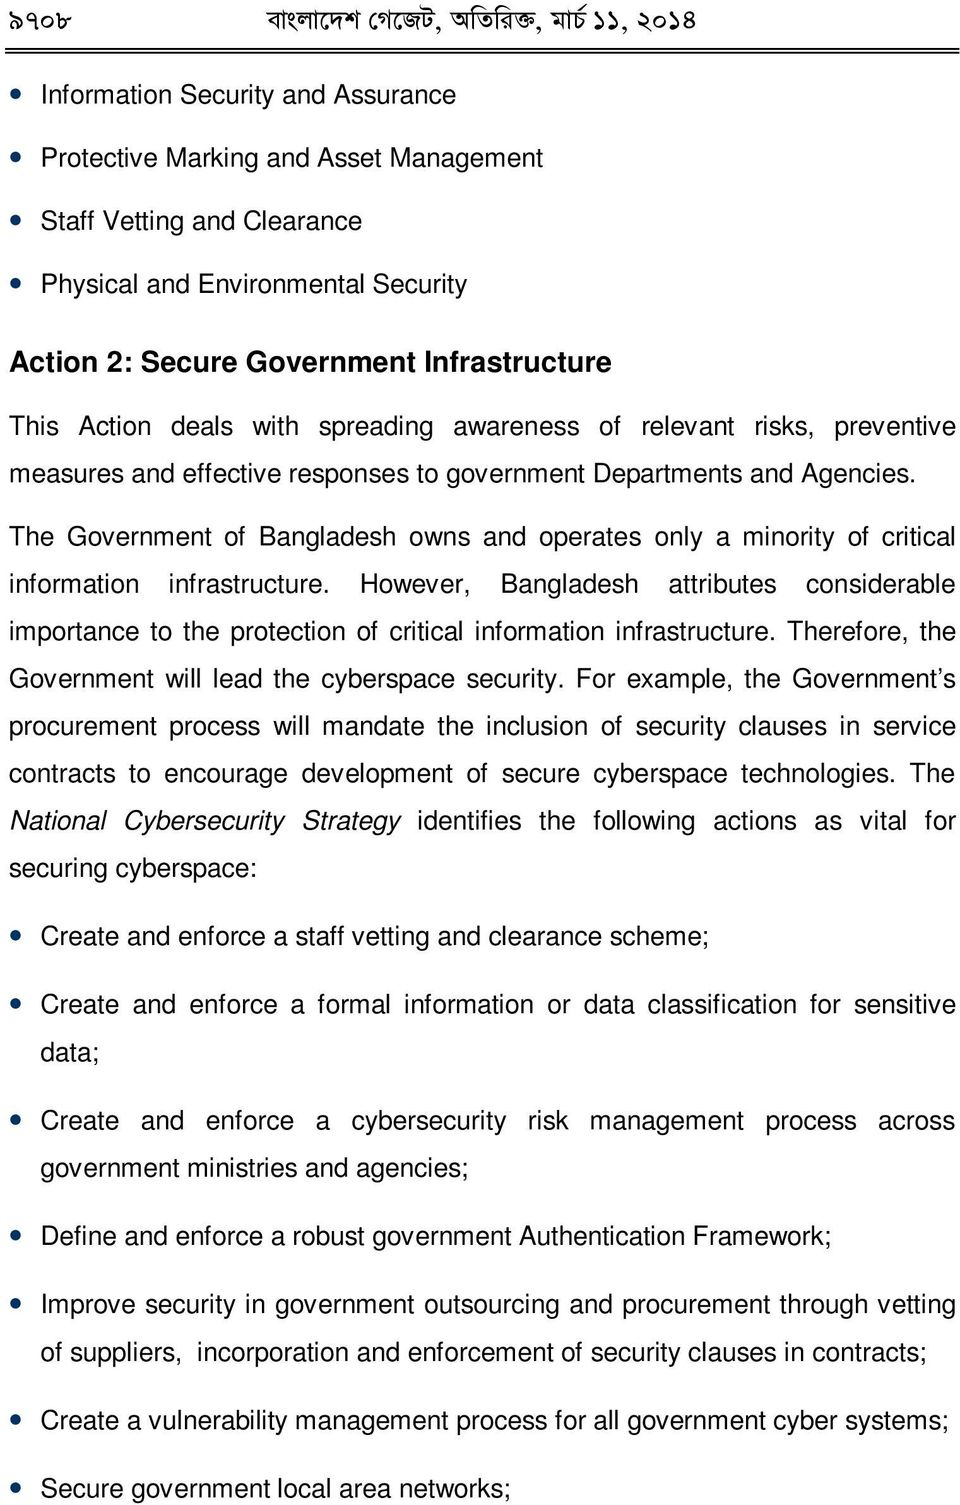 The Government of Bangladesh owns and operates only a minority of critical information infrastructure.